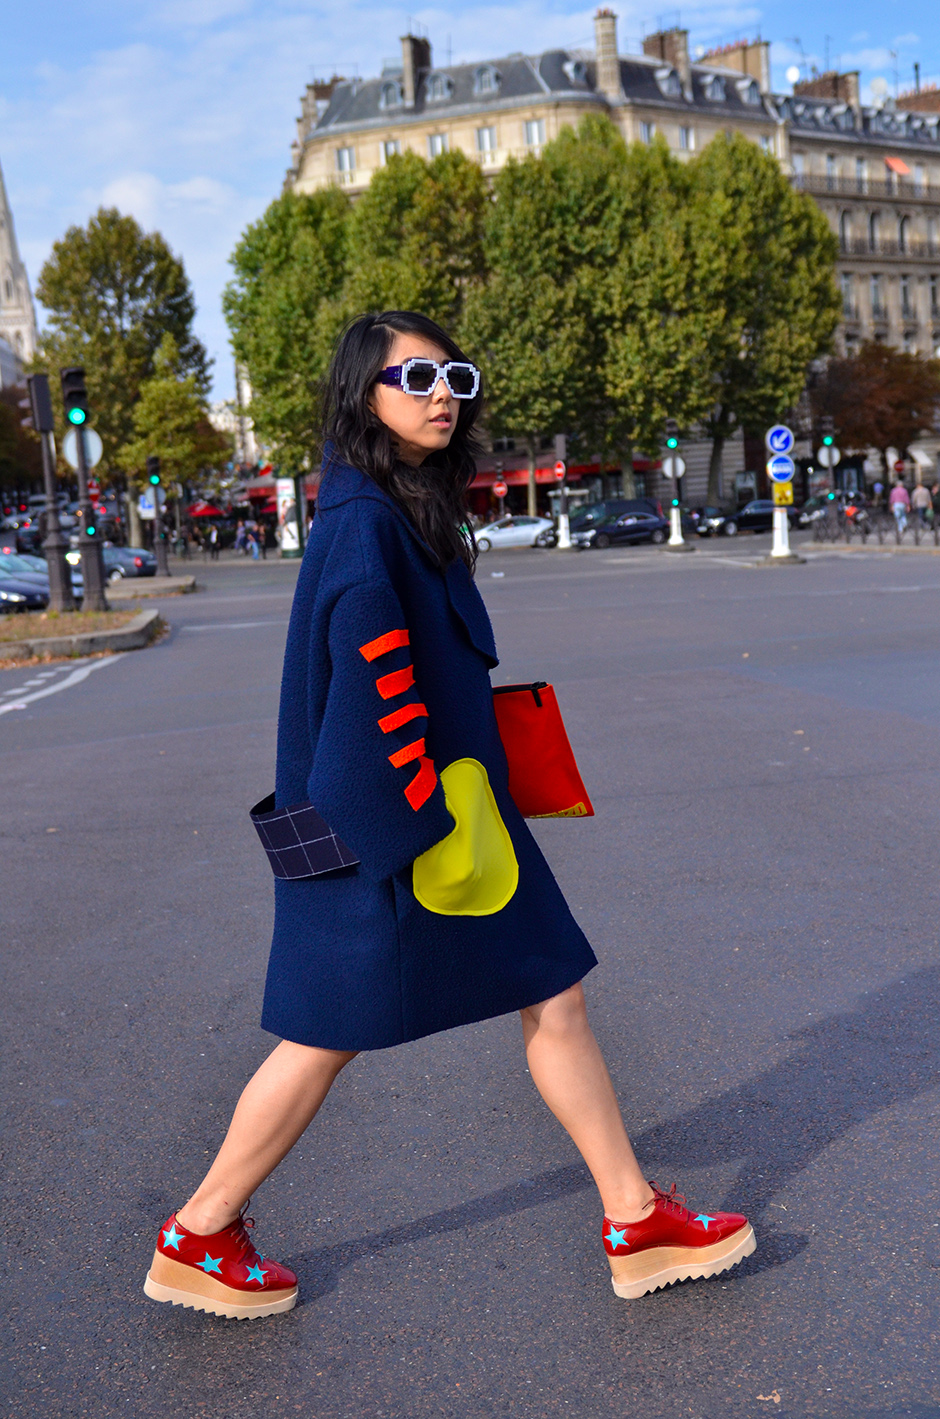 pfwday5-jacquemus street style, stella mccartney shoes